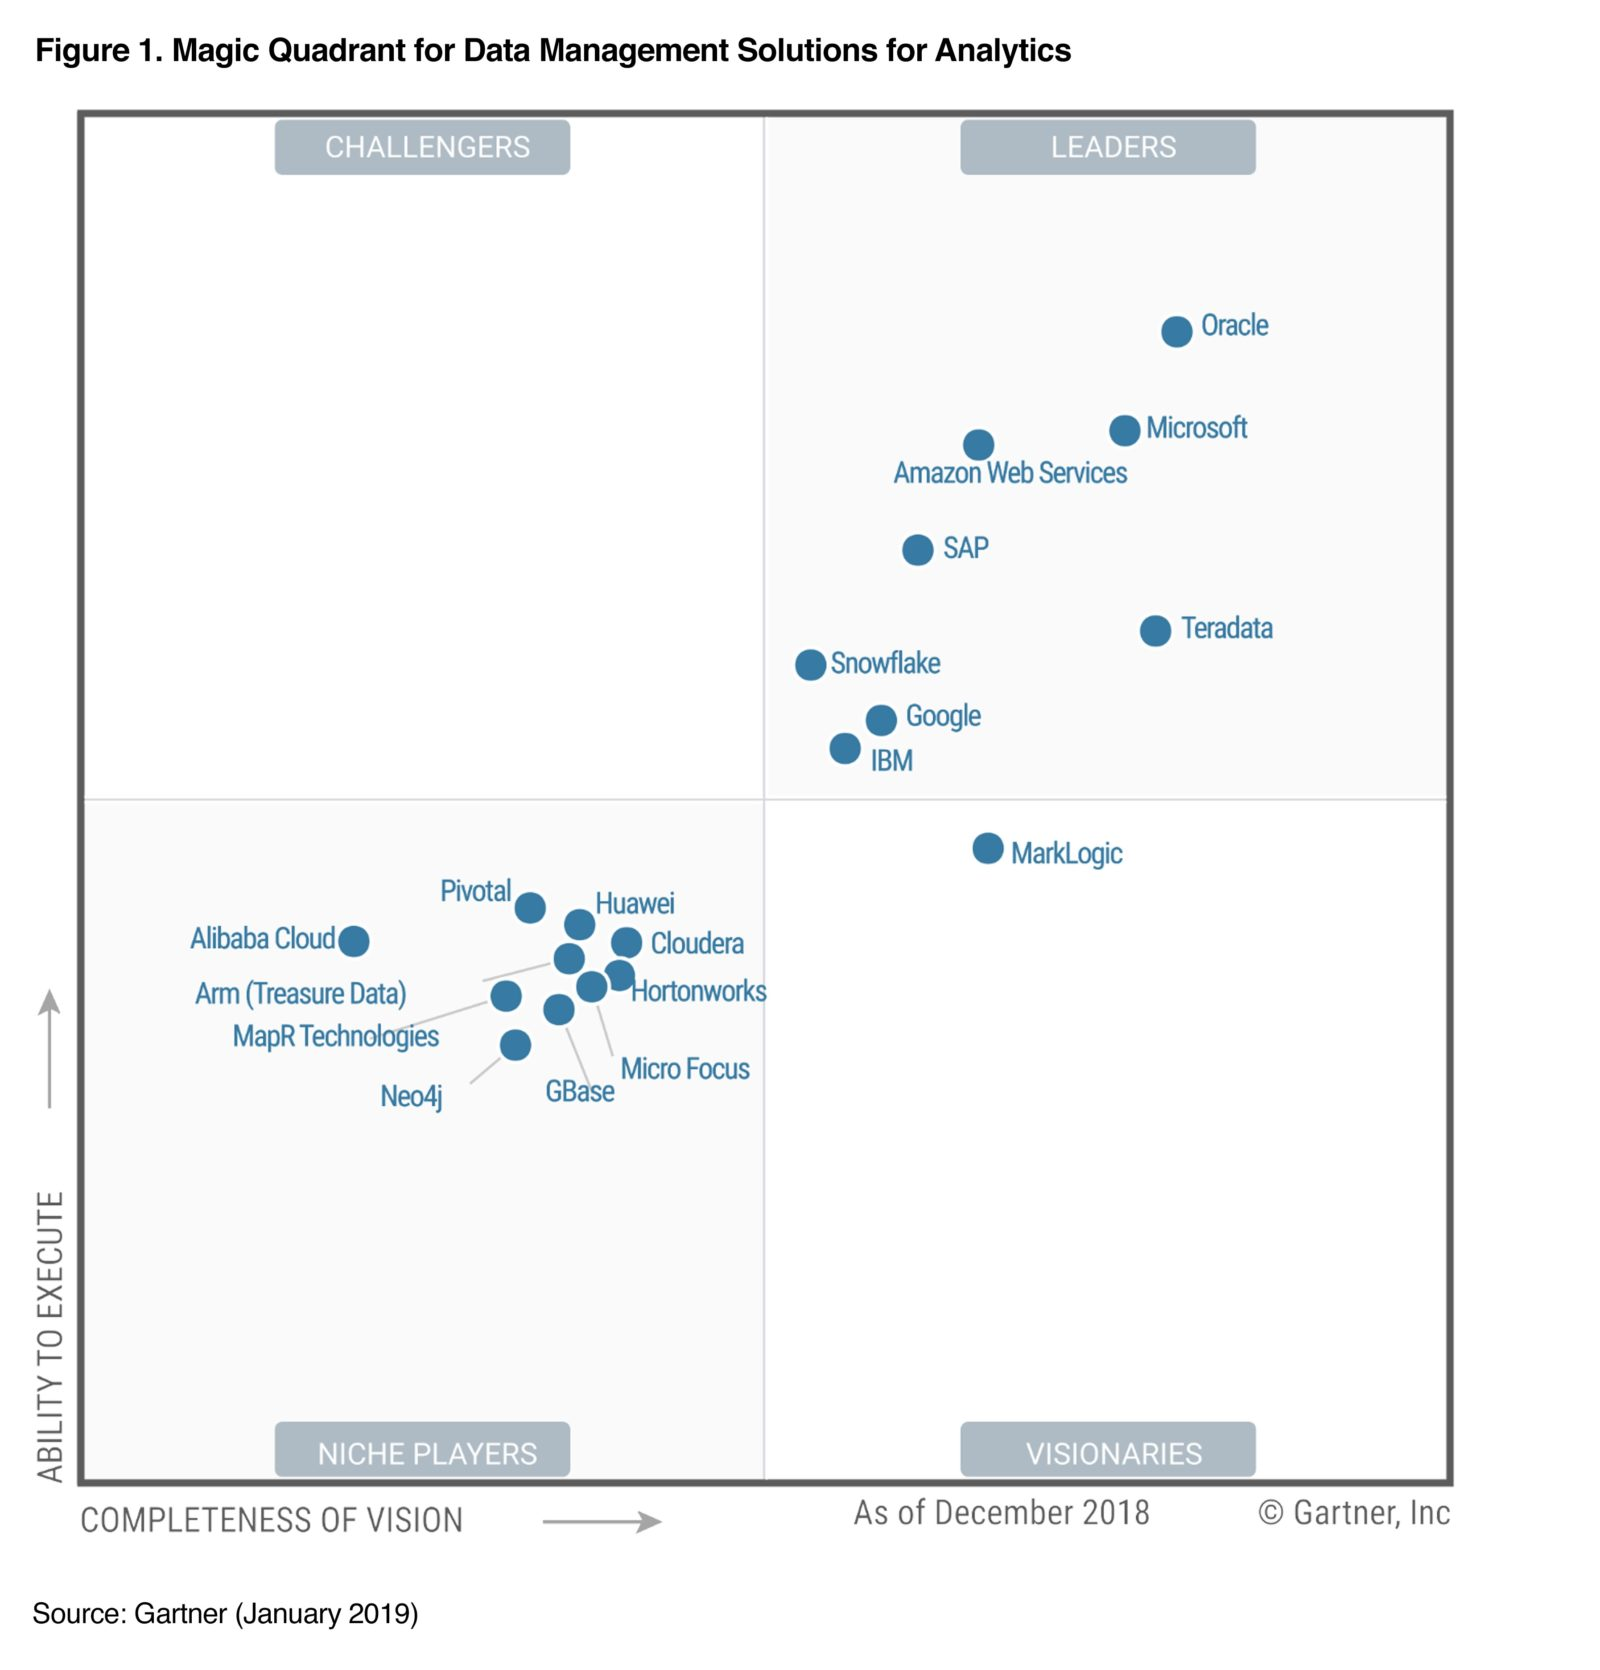 Snowflake Recognized as a Leader by Gartner